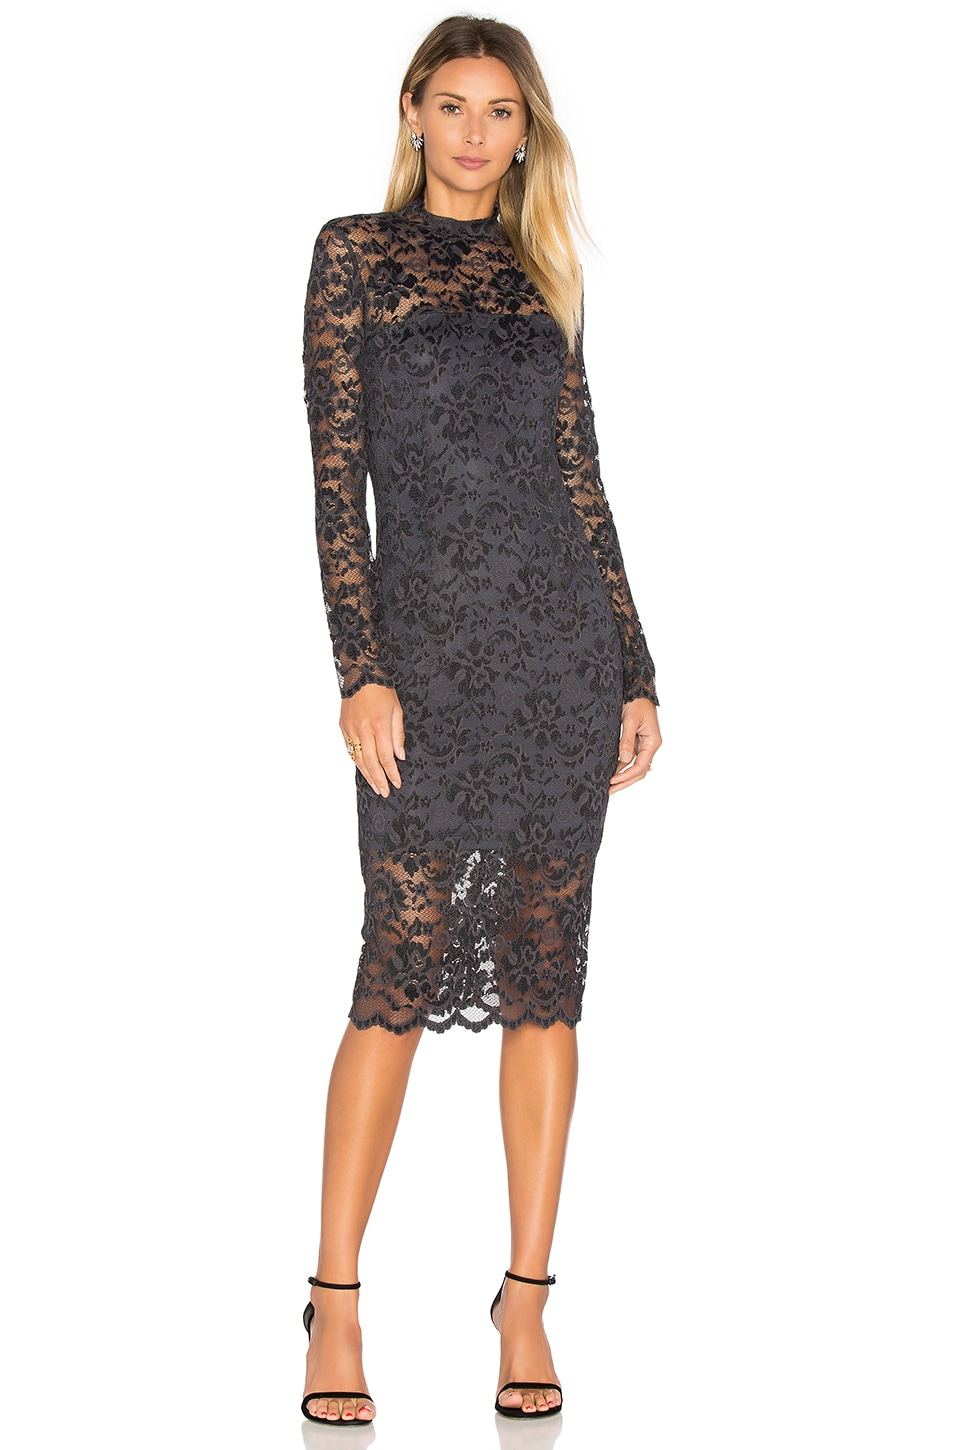 Ganni Flynn Lace Dress in Ebony & Black